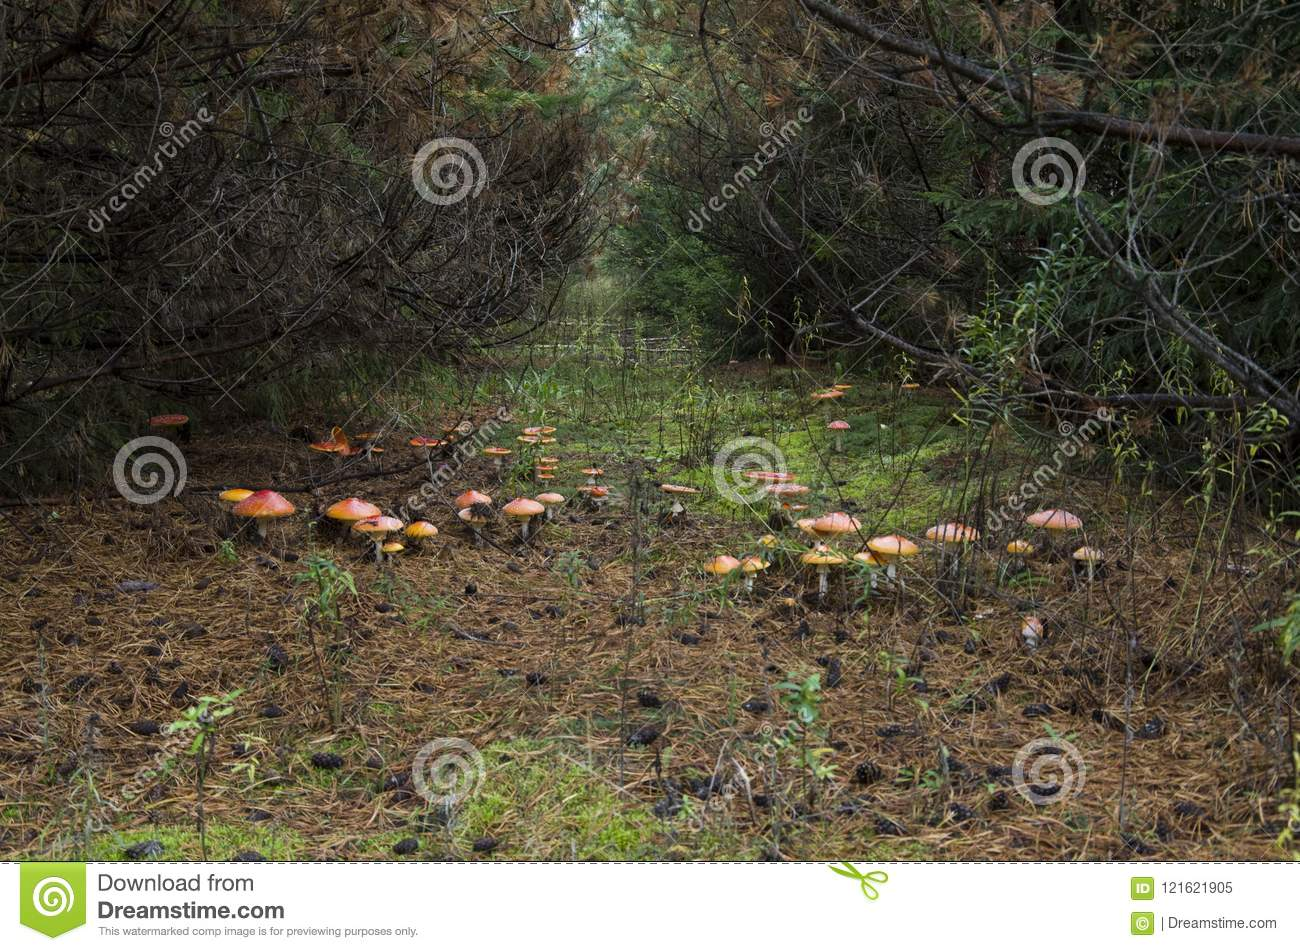 Magic forest stock image  Image of meet, trees, like - 121621905